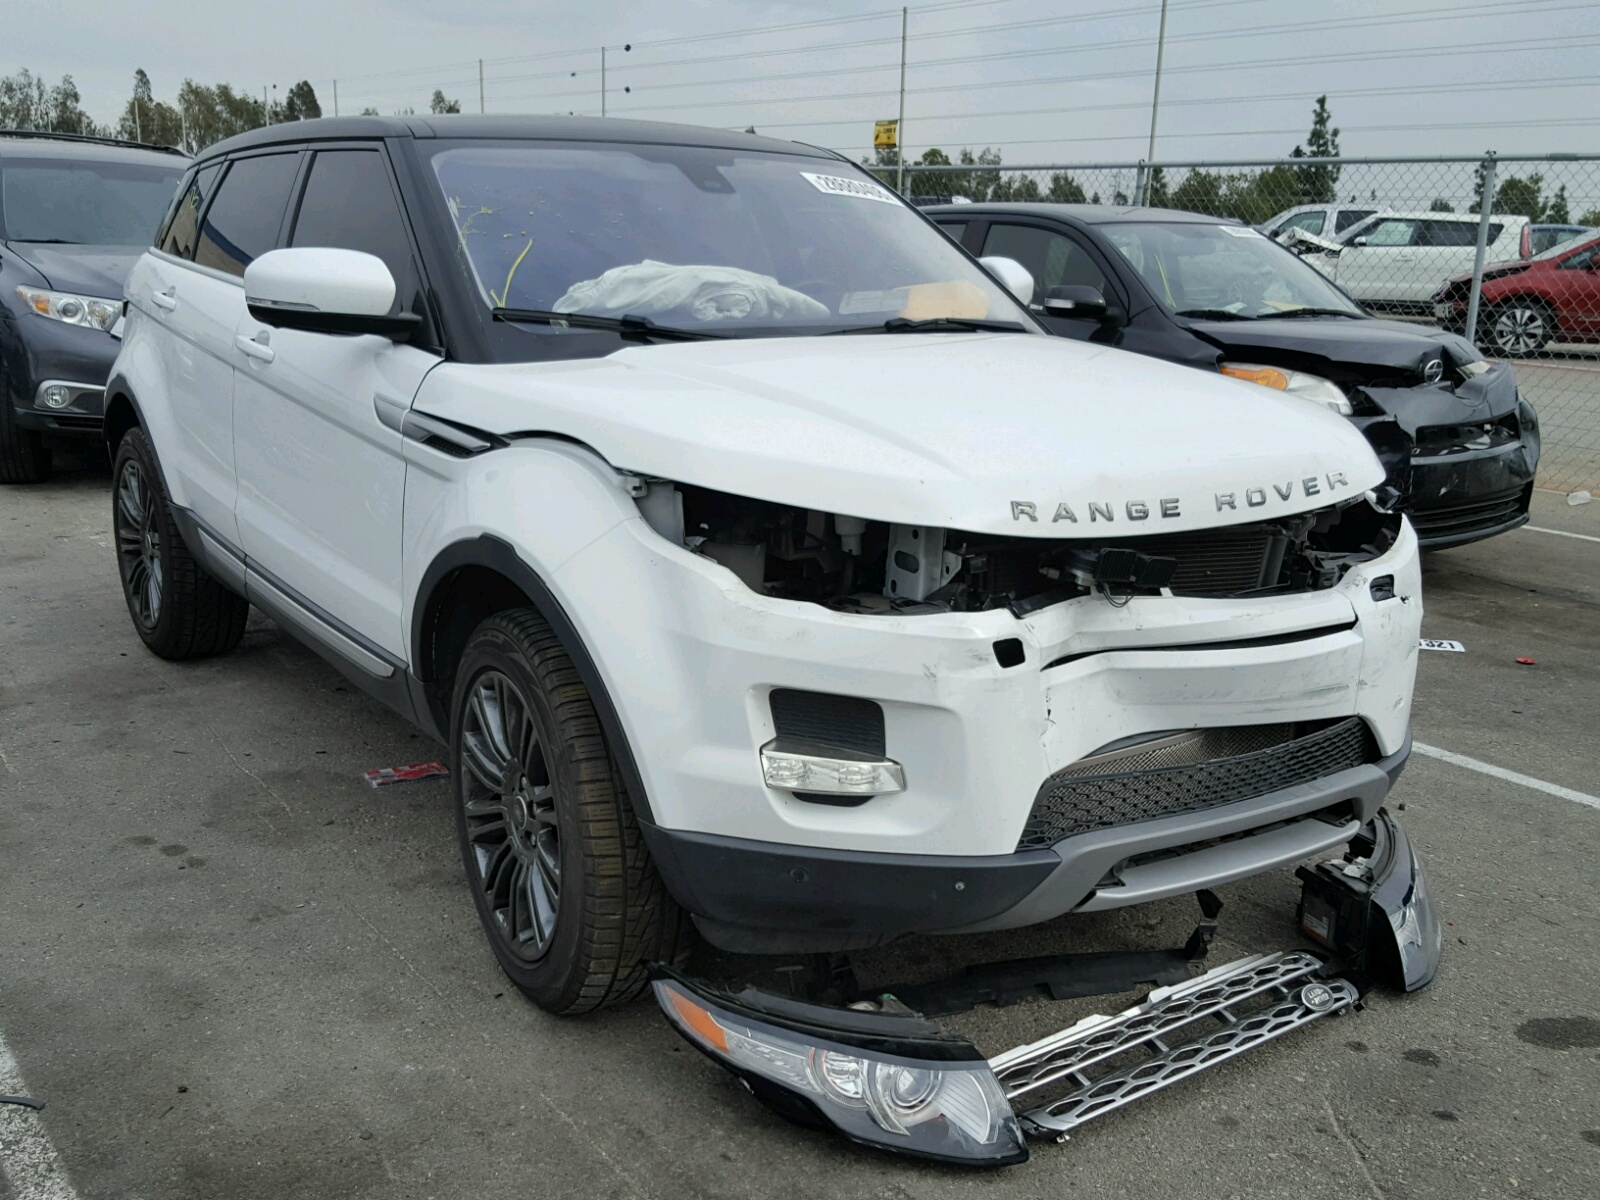 lansing landrover gray online vehicle view for title auctions auto sale copart angle flood hse of in on rover cert land carfinder mi en lot